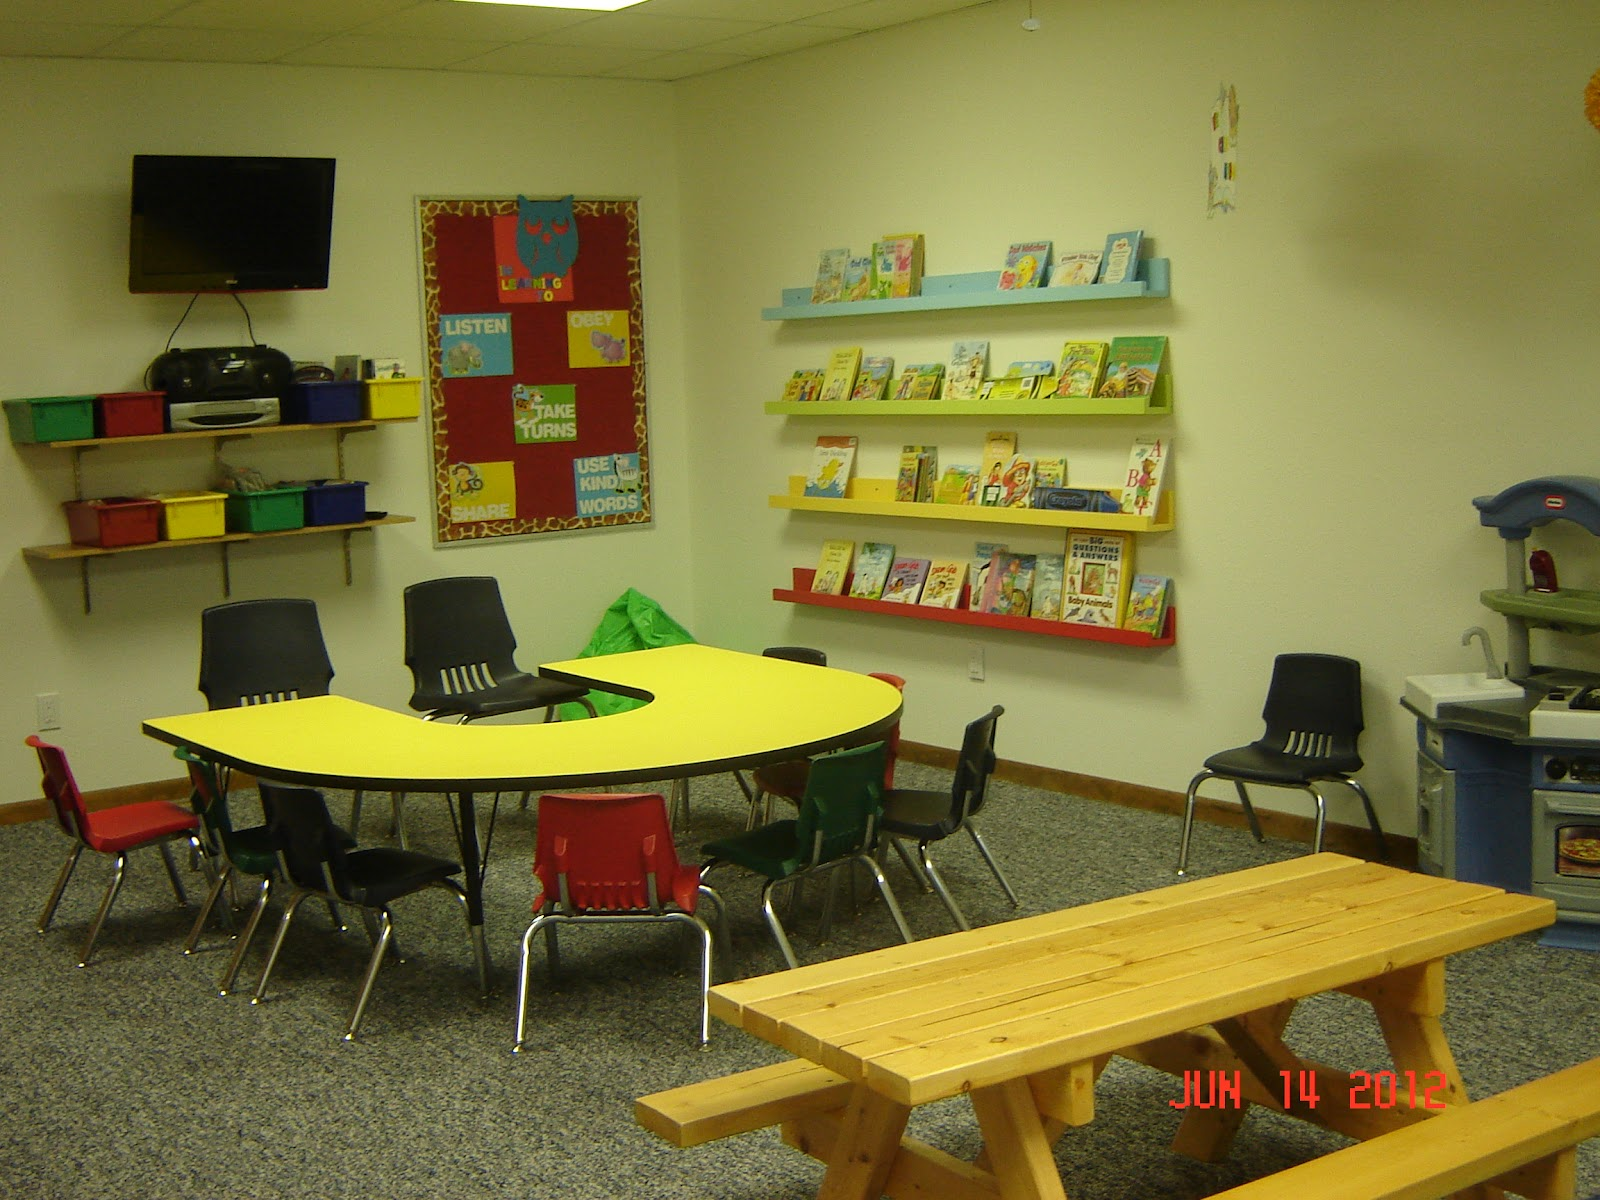 Pictures Of Classroom Furnitures ~ Church nursery decorating ideas porentreospingosdechuva